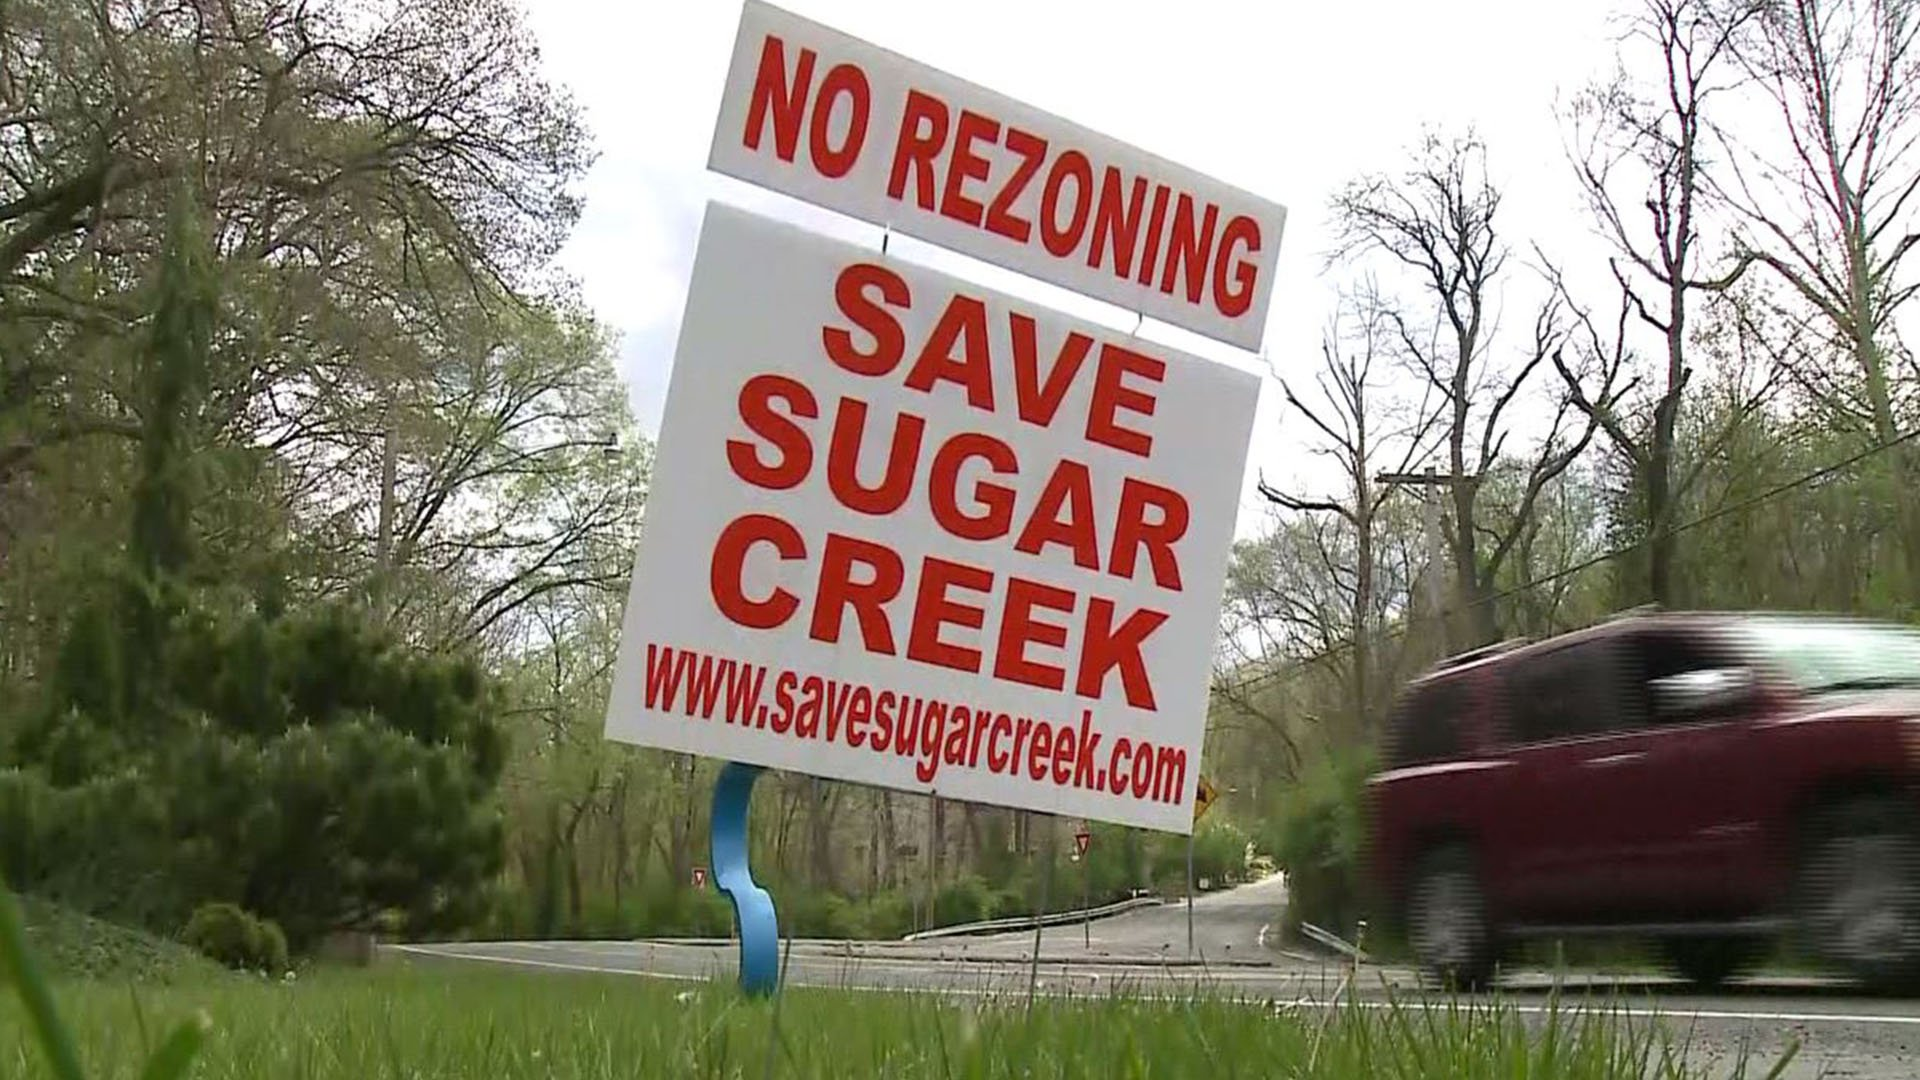 Neighbors in the Sugar Creek Valley neighborhood of Kirkwood are rallying support to oppose a zoning change. (Credit: KMOV)